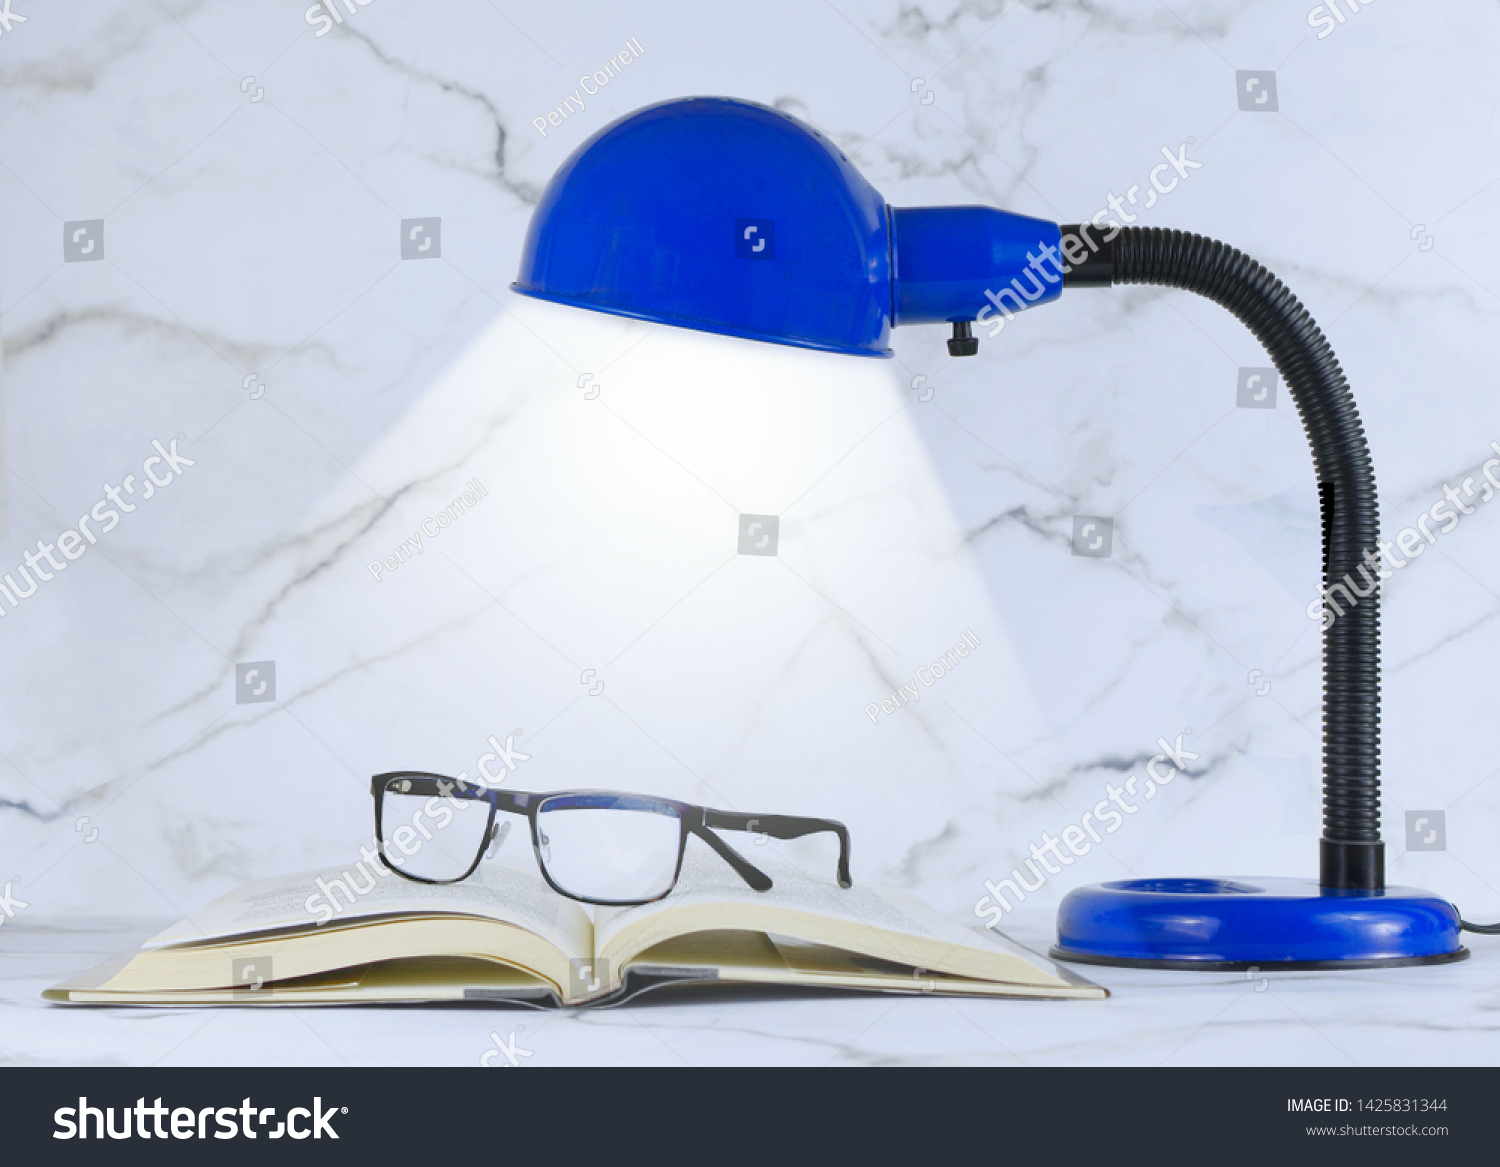 stock-photo-a-blue-personal-sized-desk-l